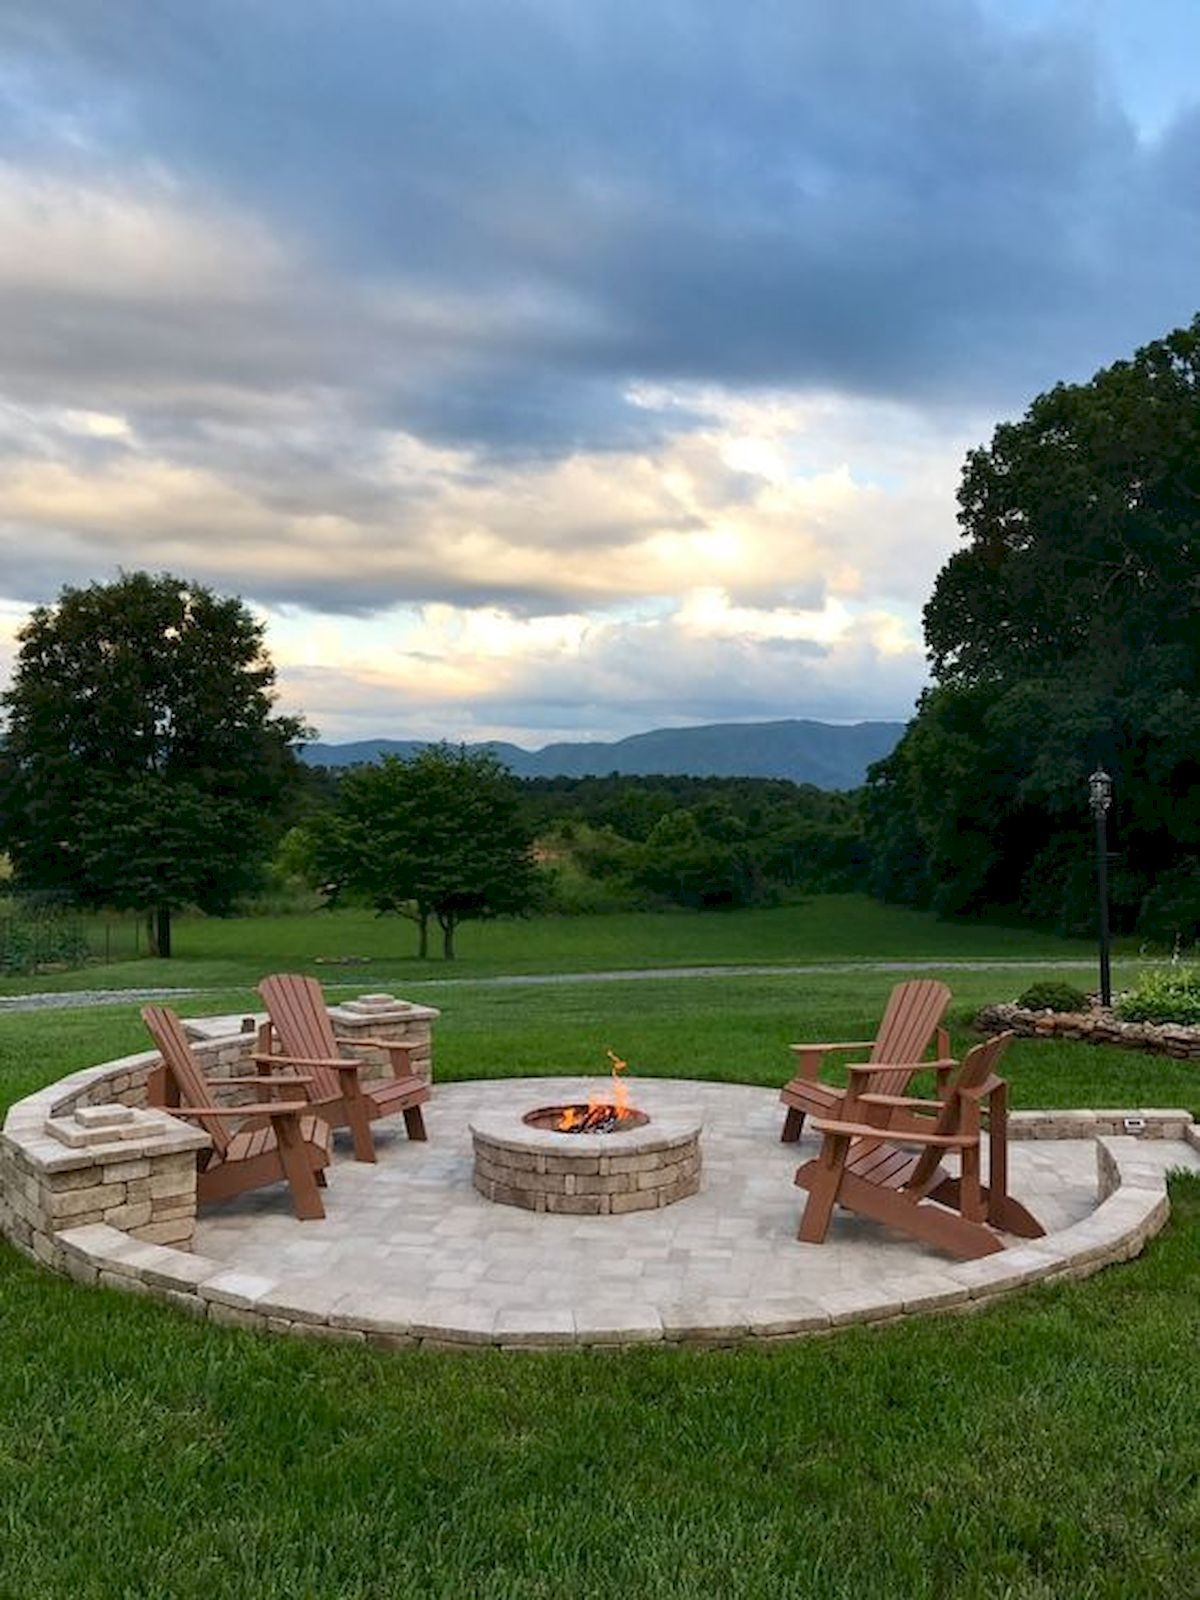 48 Inspiring Outdoor Fire Pit Design Ideas To Try - ZYHOMY on Outdoor Fire Pit Ideas id=77210